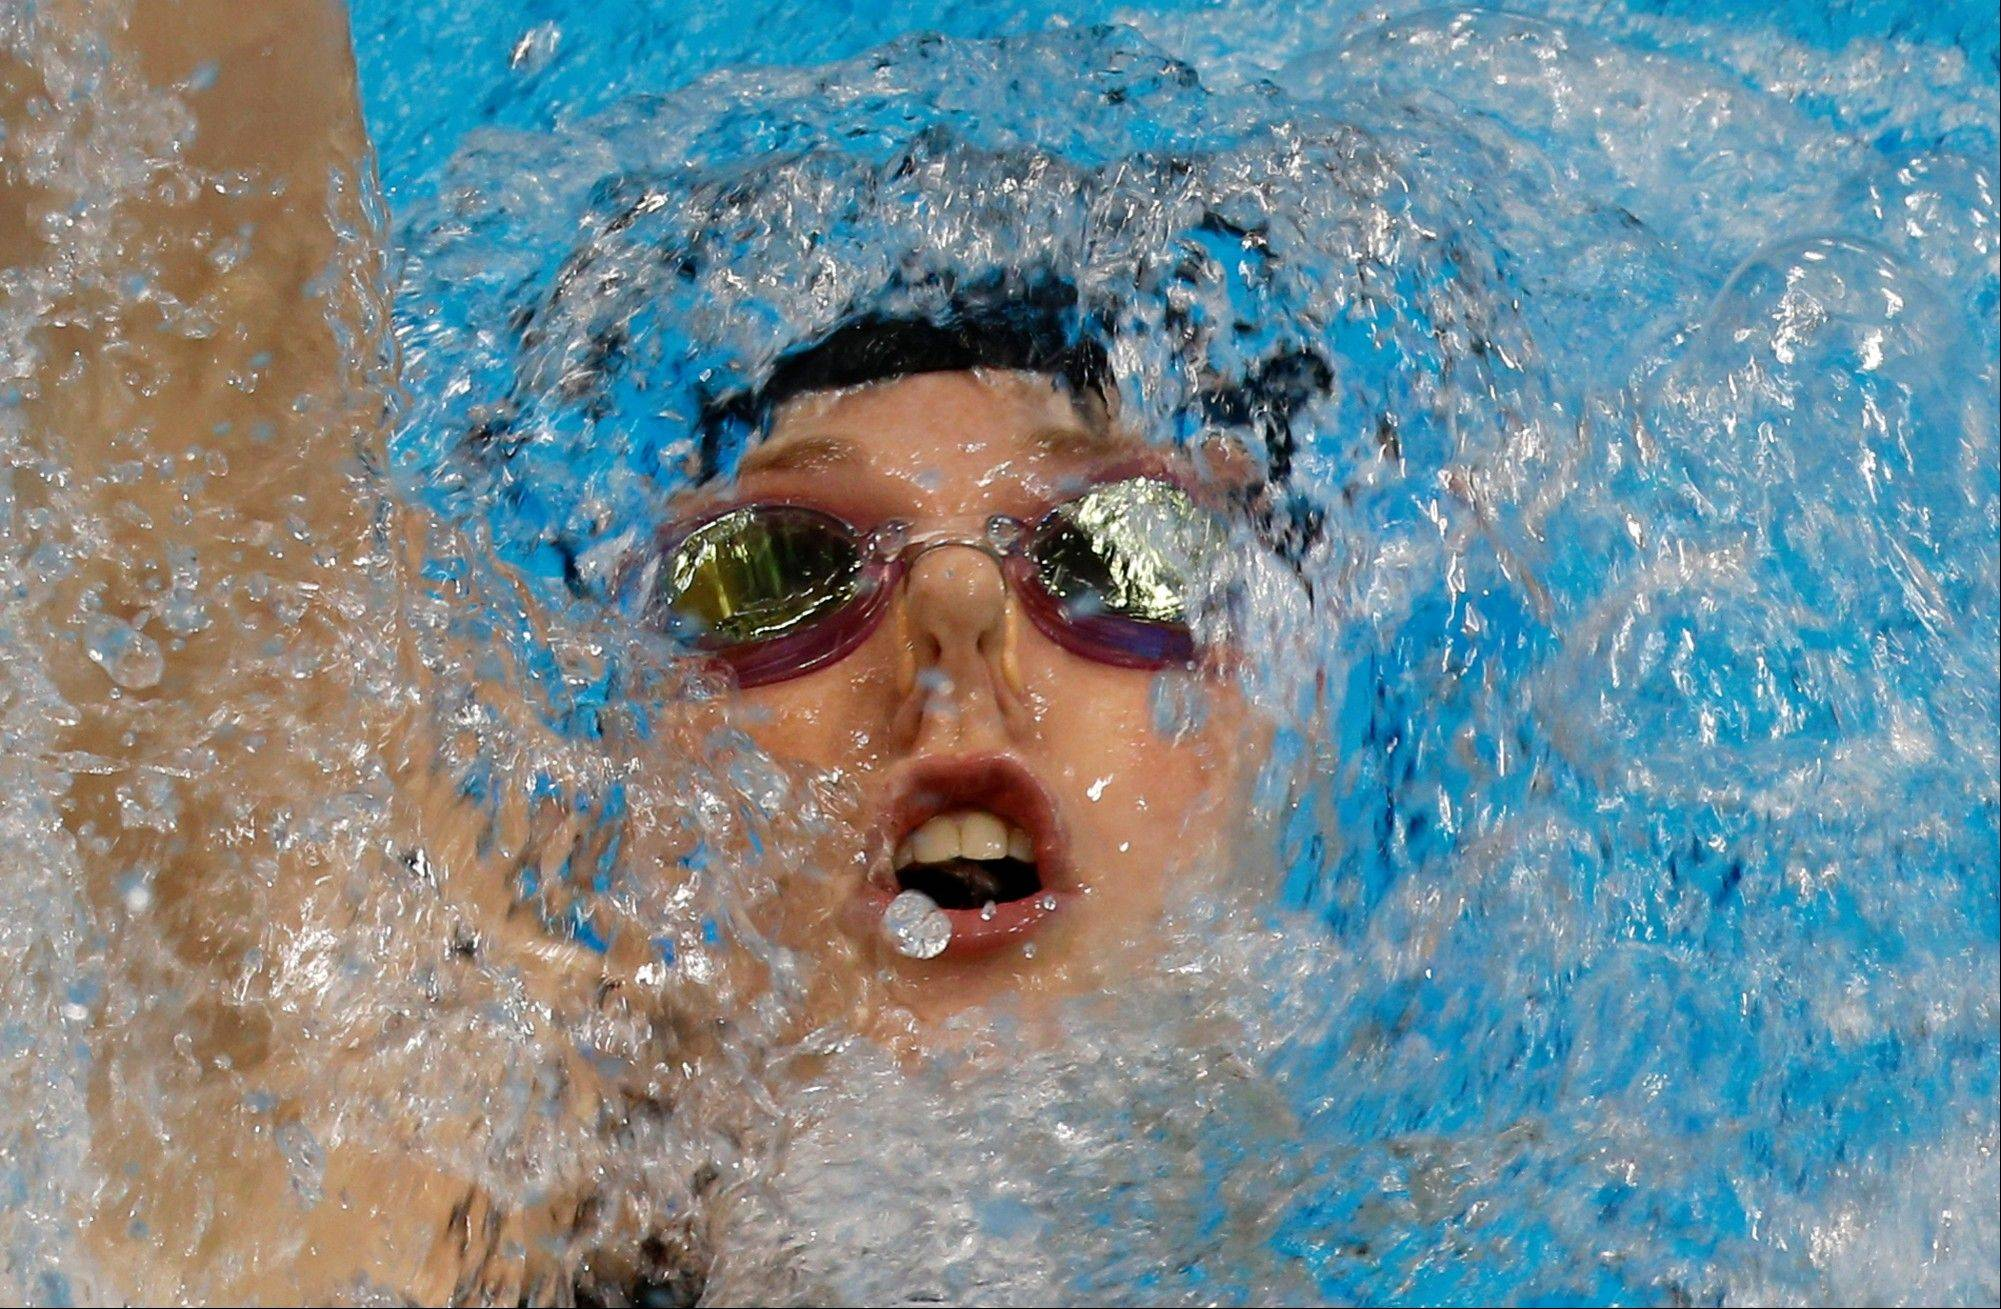 United States' Missy Franklin competes in the women's 200-meter backstroke final at the Aquatics Centre in the Olympic Park during the 2012 Summer Olympics in London, Friday, Aug. 3, 2012. Franklin won the gold.